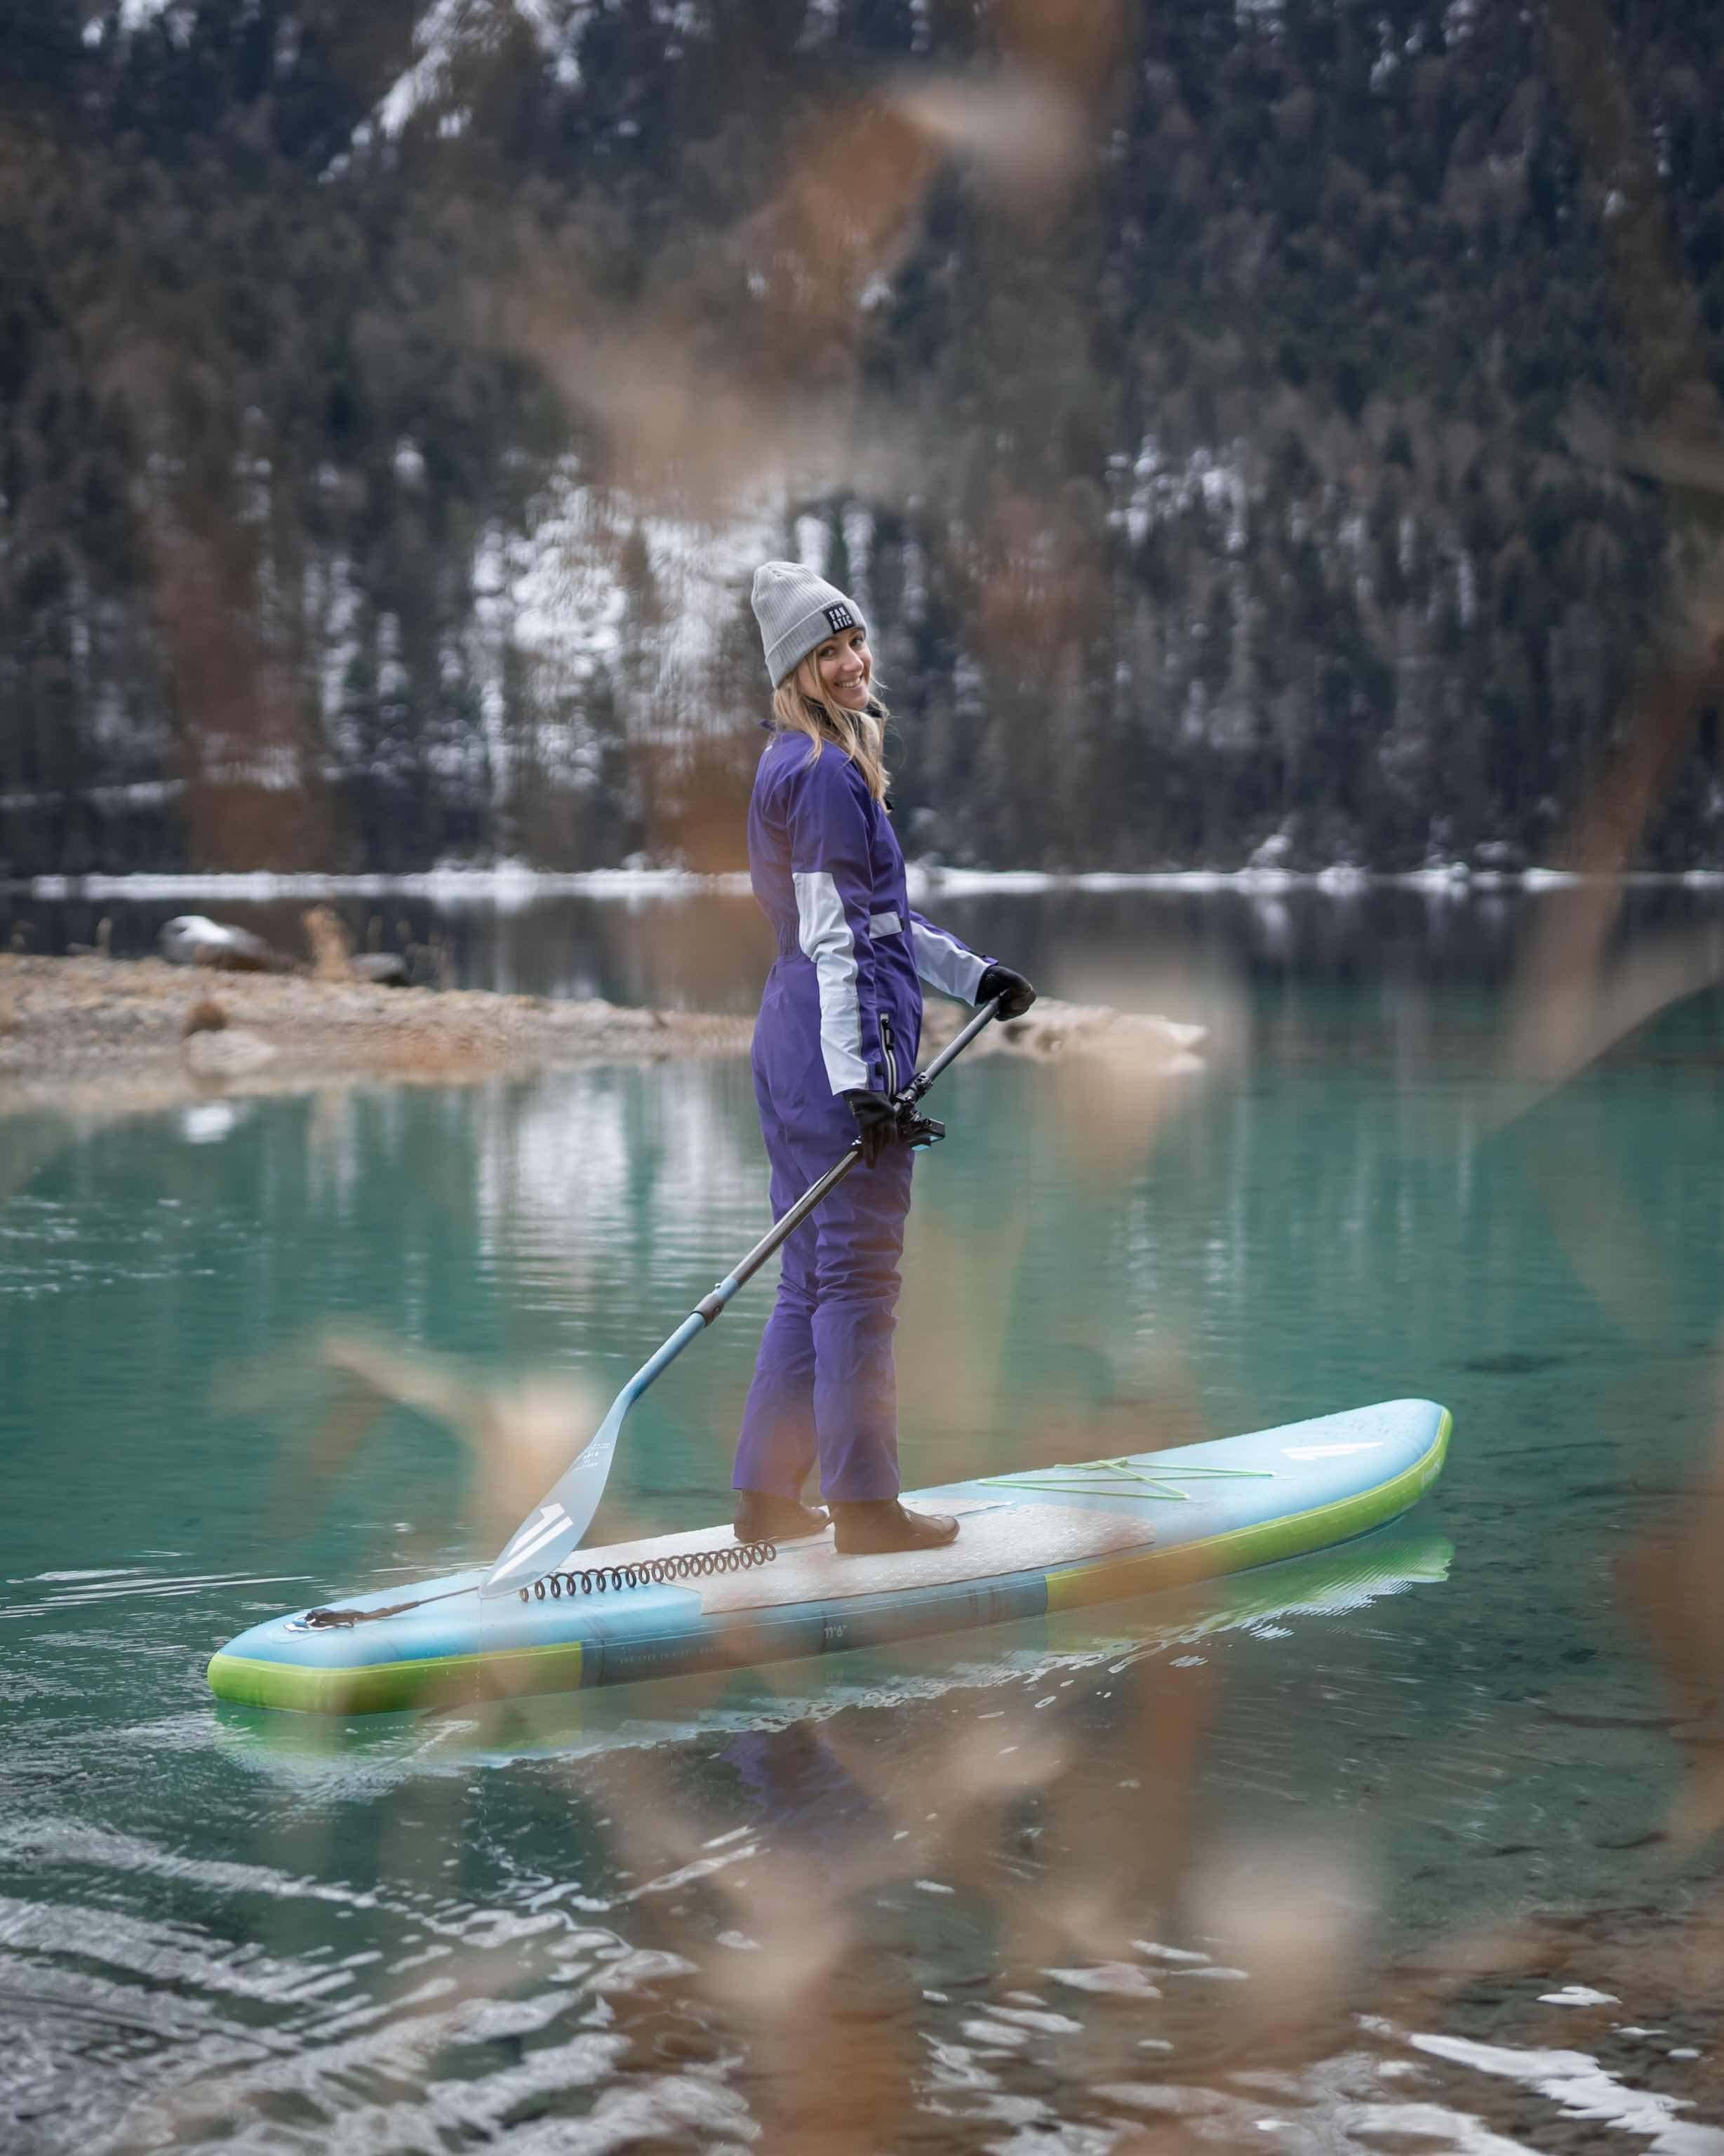 A WINTER SUP GUIDE